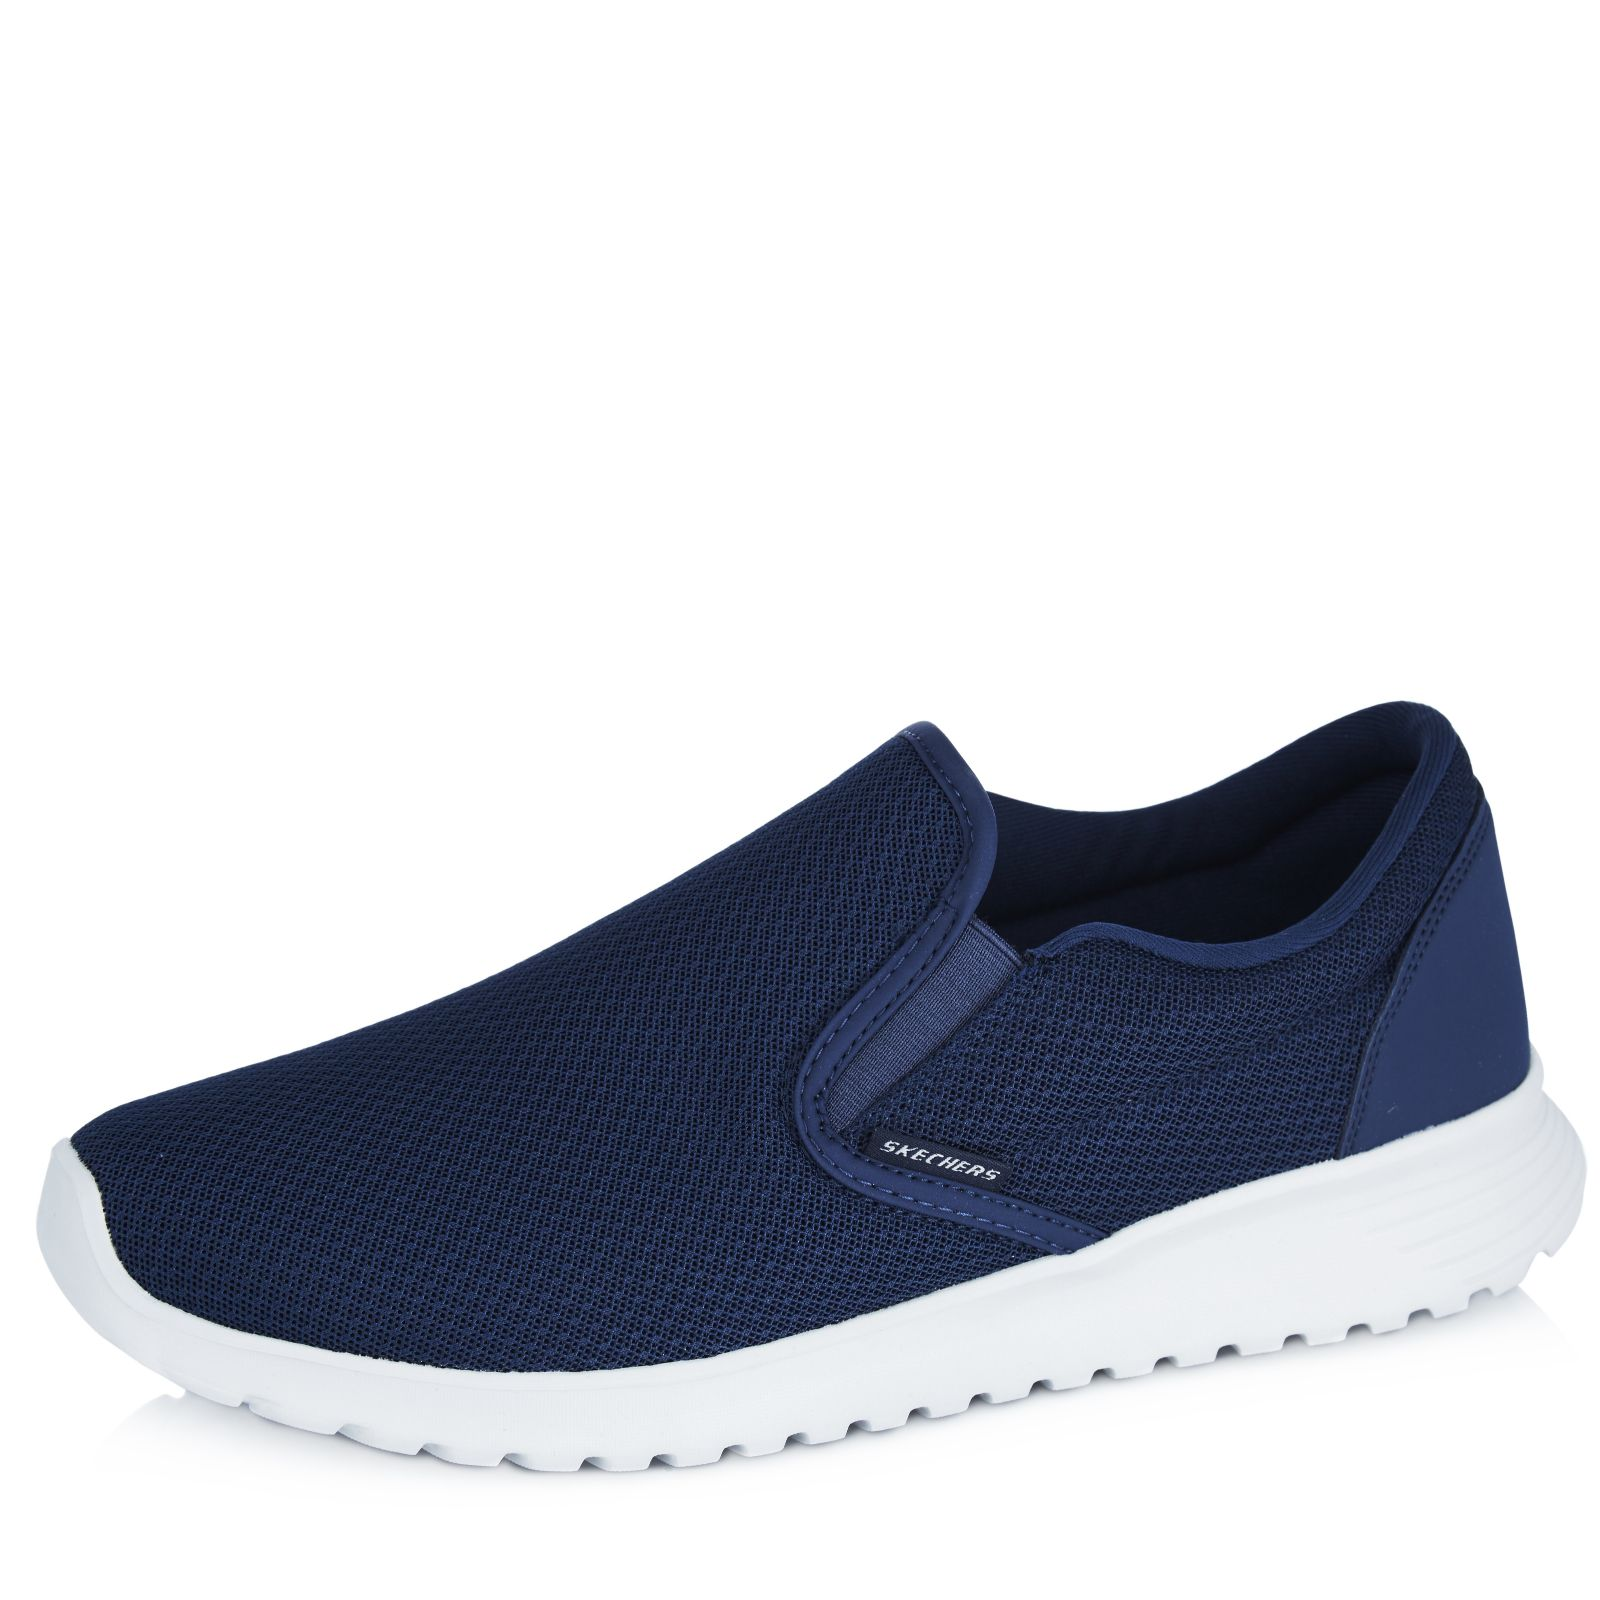 5a5e1a1ab5a Skechers Zimsey Mesh Men s Slip On Shoe with Air Cooled Memory Foam - QVC UK